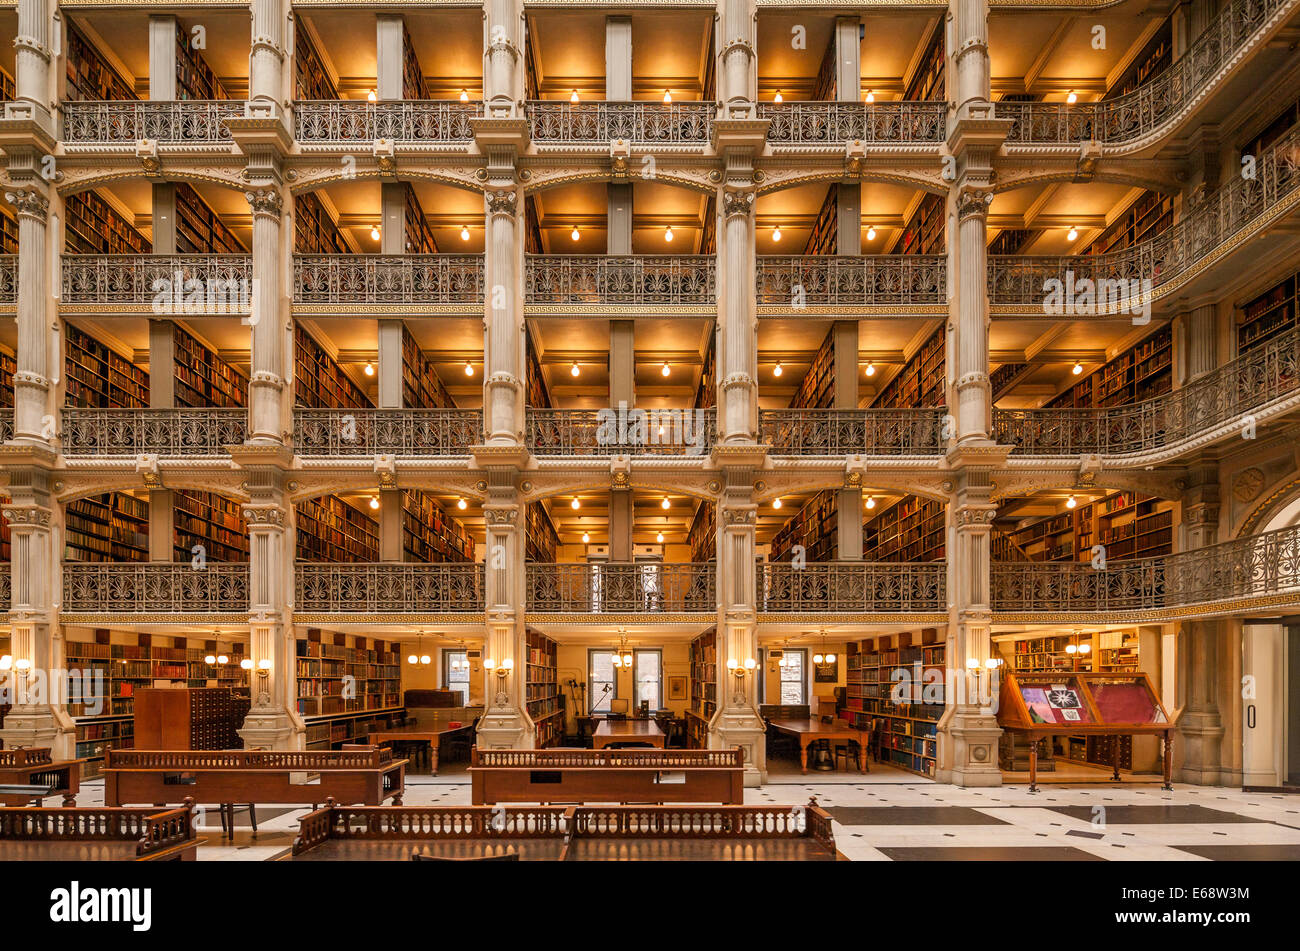 Baltimore George Peabody Library one of the most beautiful famous libraries in the world. - Stock Image